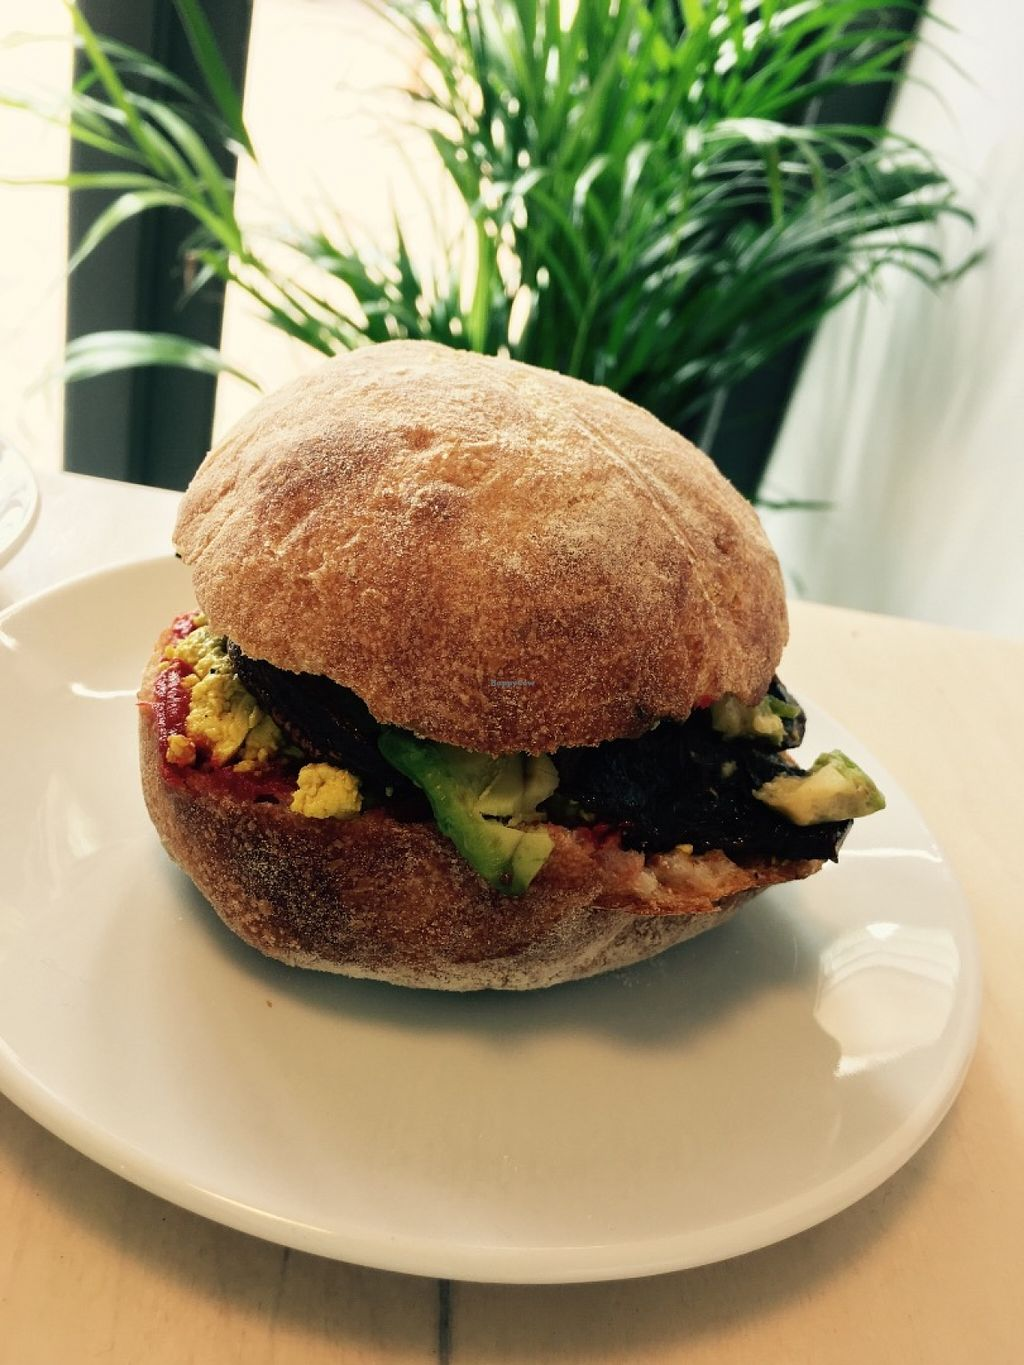 """Photo of The Plant Room Coffee  by <a href=""""/members/profile/Nickysr"""">Nickysr</a> <br/>Scrambled tofu, smoked mushroom and avocado roll <br/> June 11, 2016  - <a href='/contact/abuse/image/74956/153528'>Report</a>"""